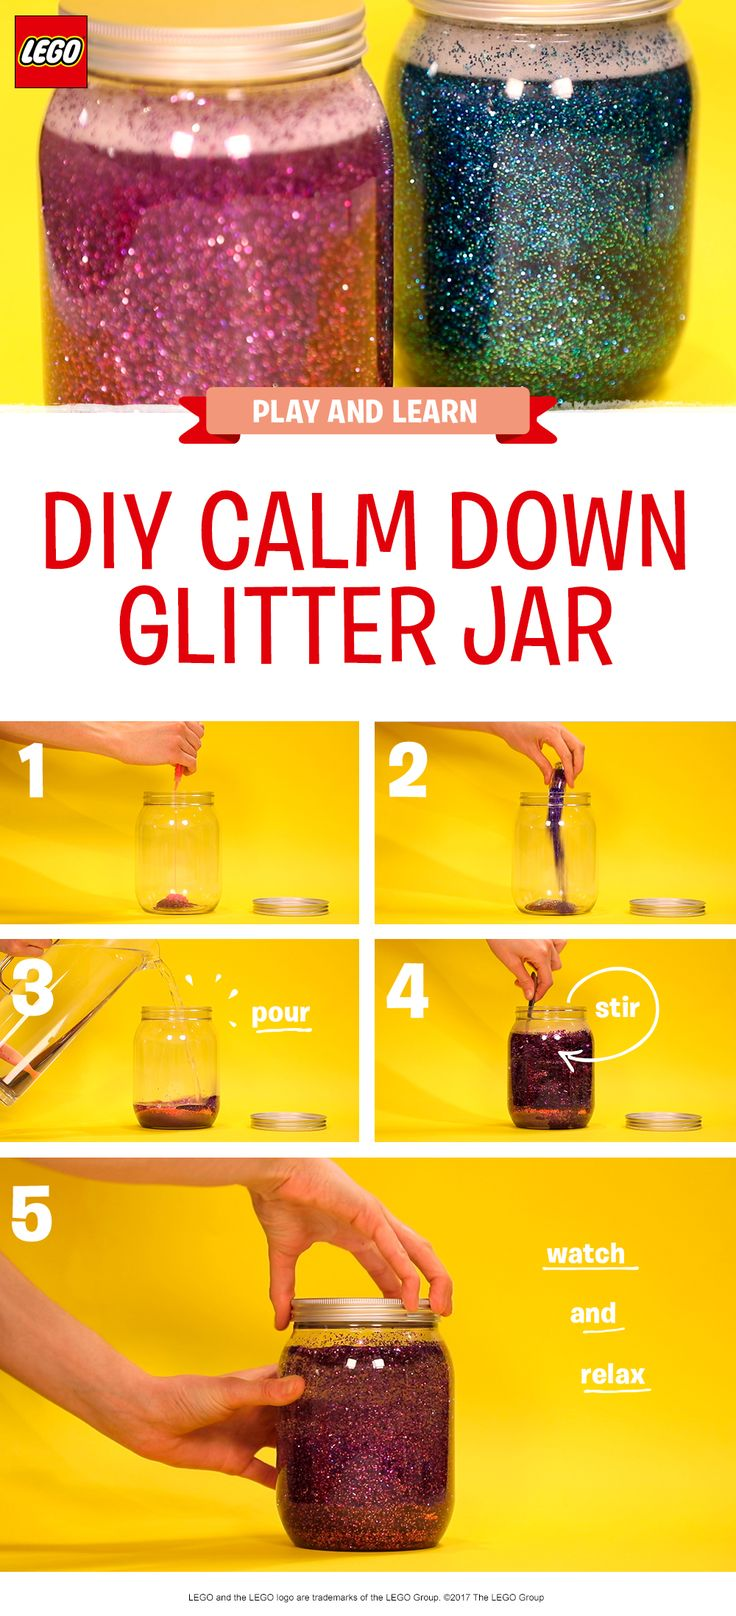 This glittery DIY Calm Jar is a mesmerizing craft activity for pre-schoolers. Customize it using your little one's favourite colors, or whatever glitter you have available, and watch as they become transfixed by the psychedelic patterns. (Just be sure to use a plastic jar and stick the lid down carefully with child safe glue to avoid any accidents). So sparkly!  http://lego.build/calm_jar